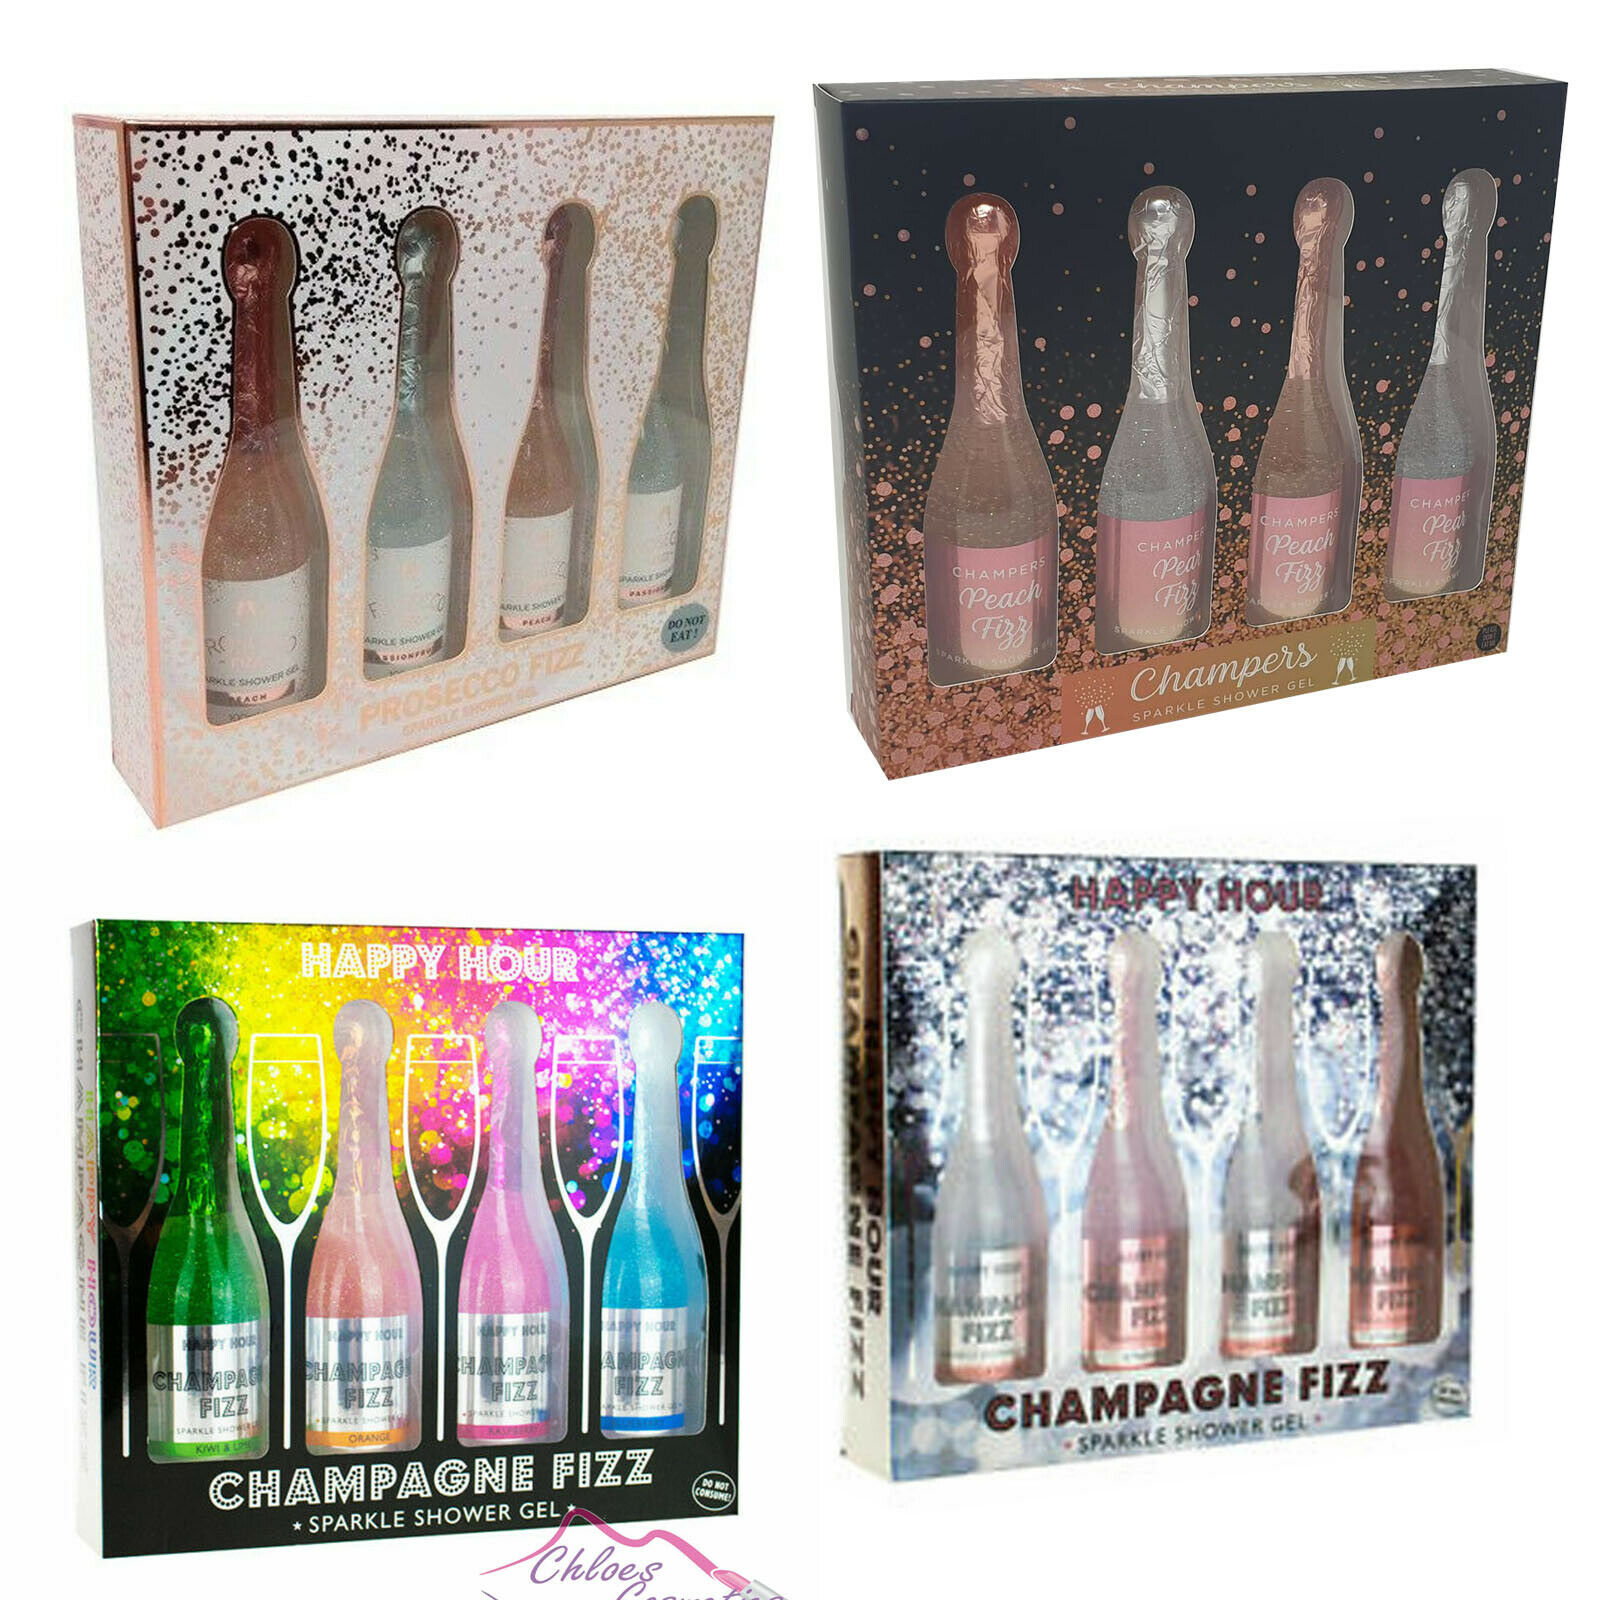 Bottles Of Champagne Fizz Bubble Bath And Shower Gel Novelty Christmas Gift Set Ebay